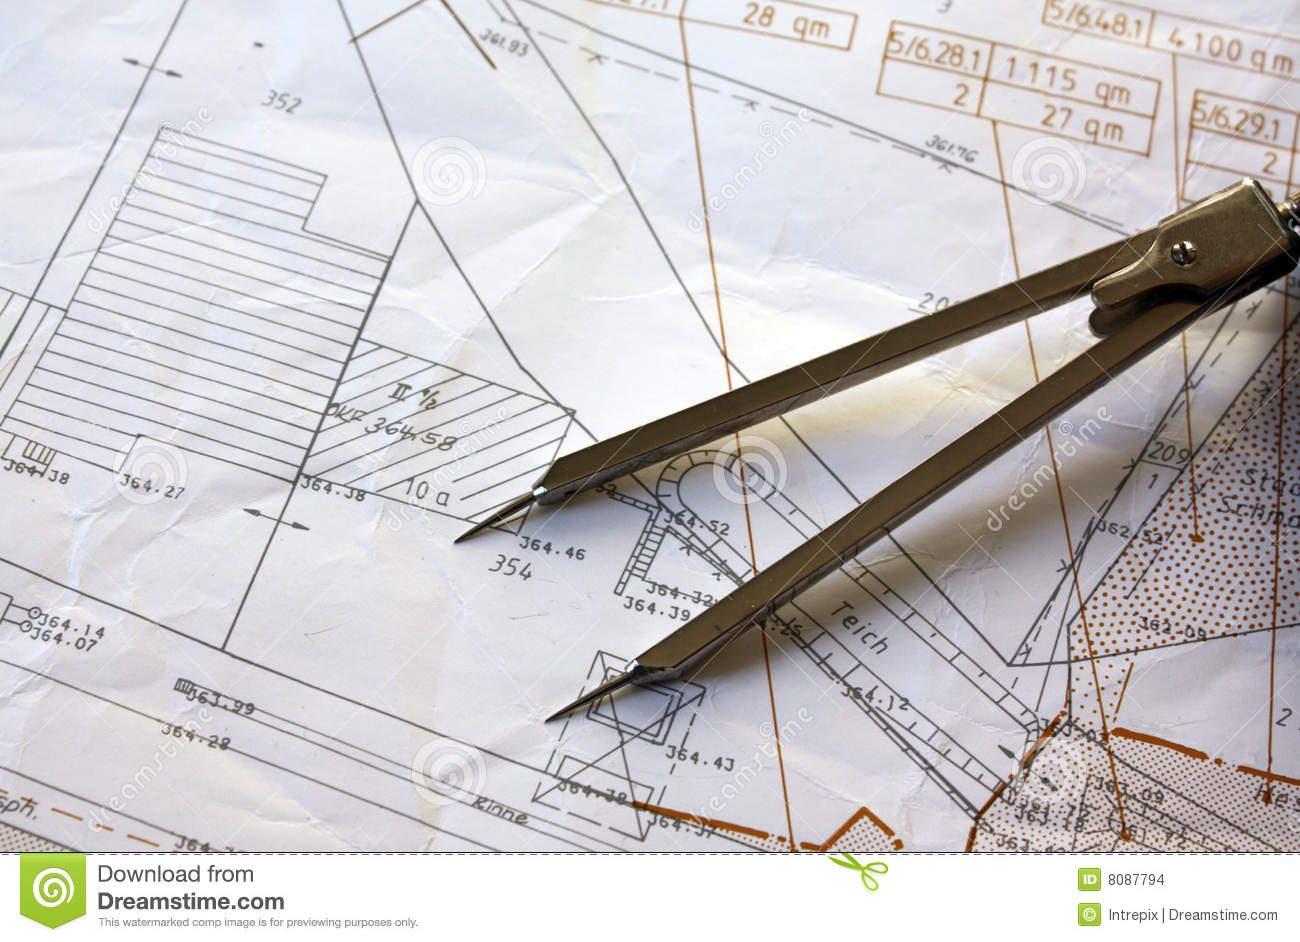 Cadastral Surveying And Mapping : Cadastre map stock photo image of technology sketch